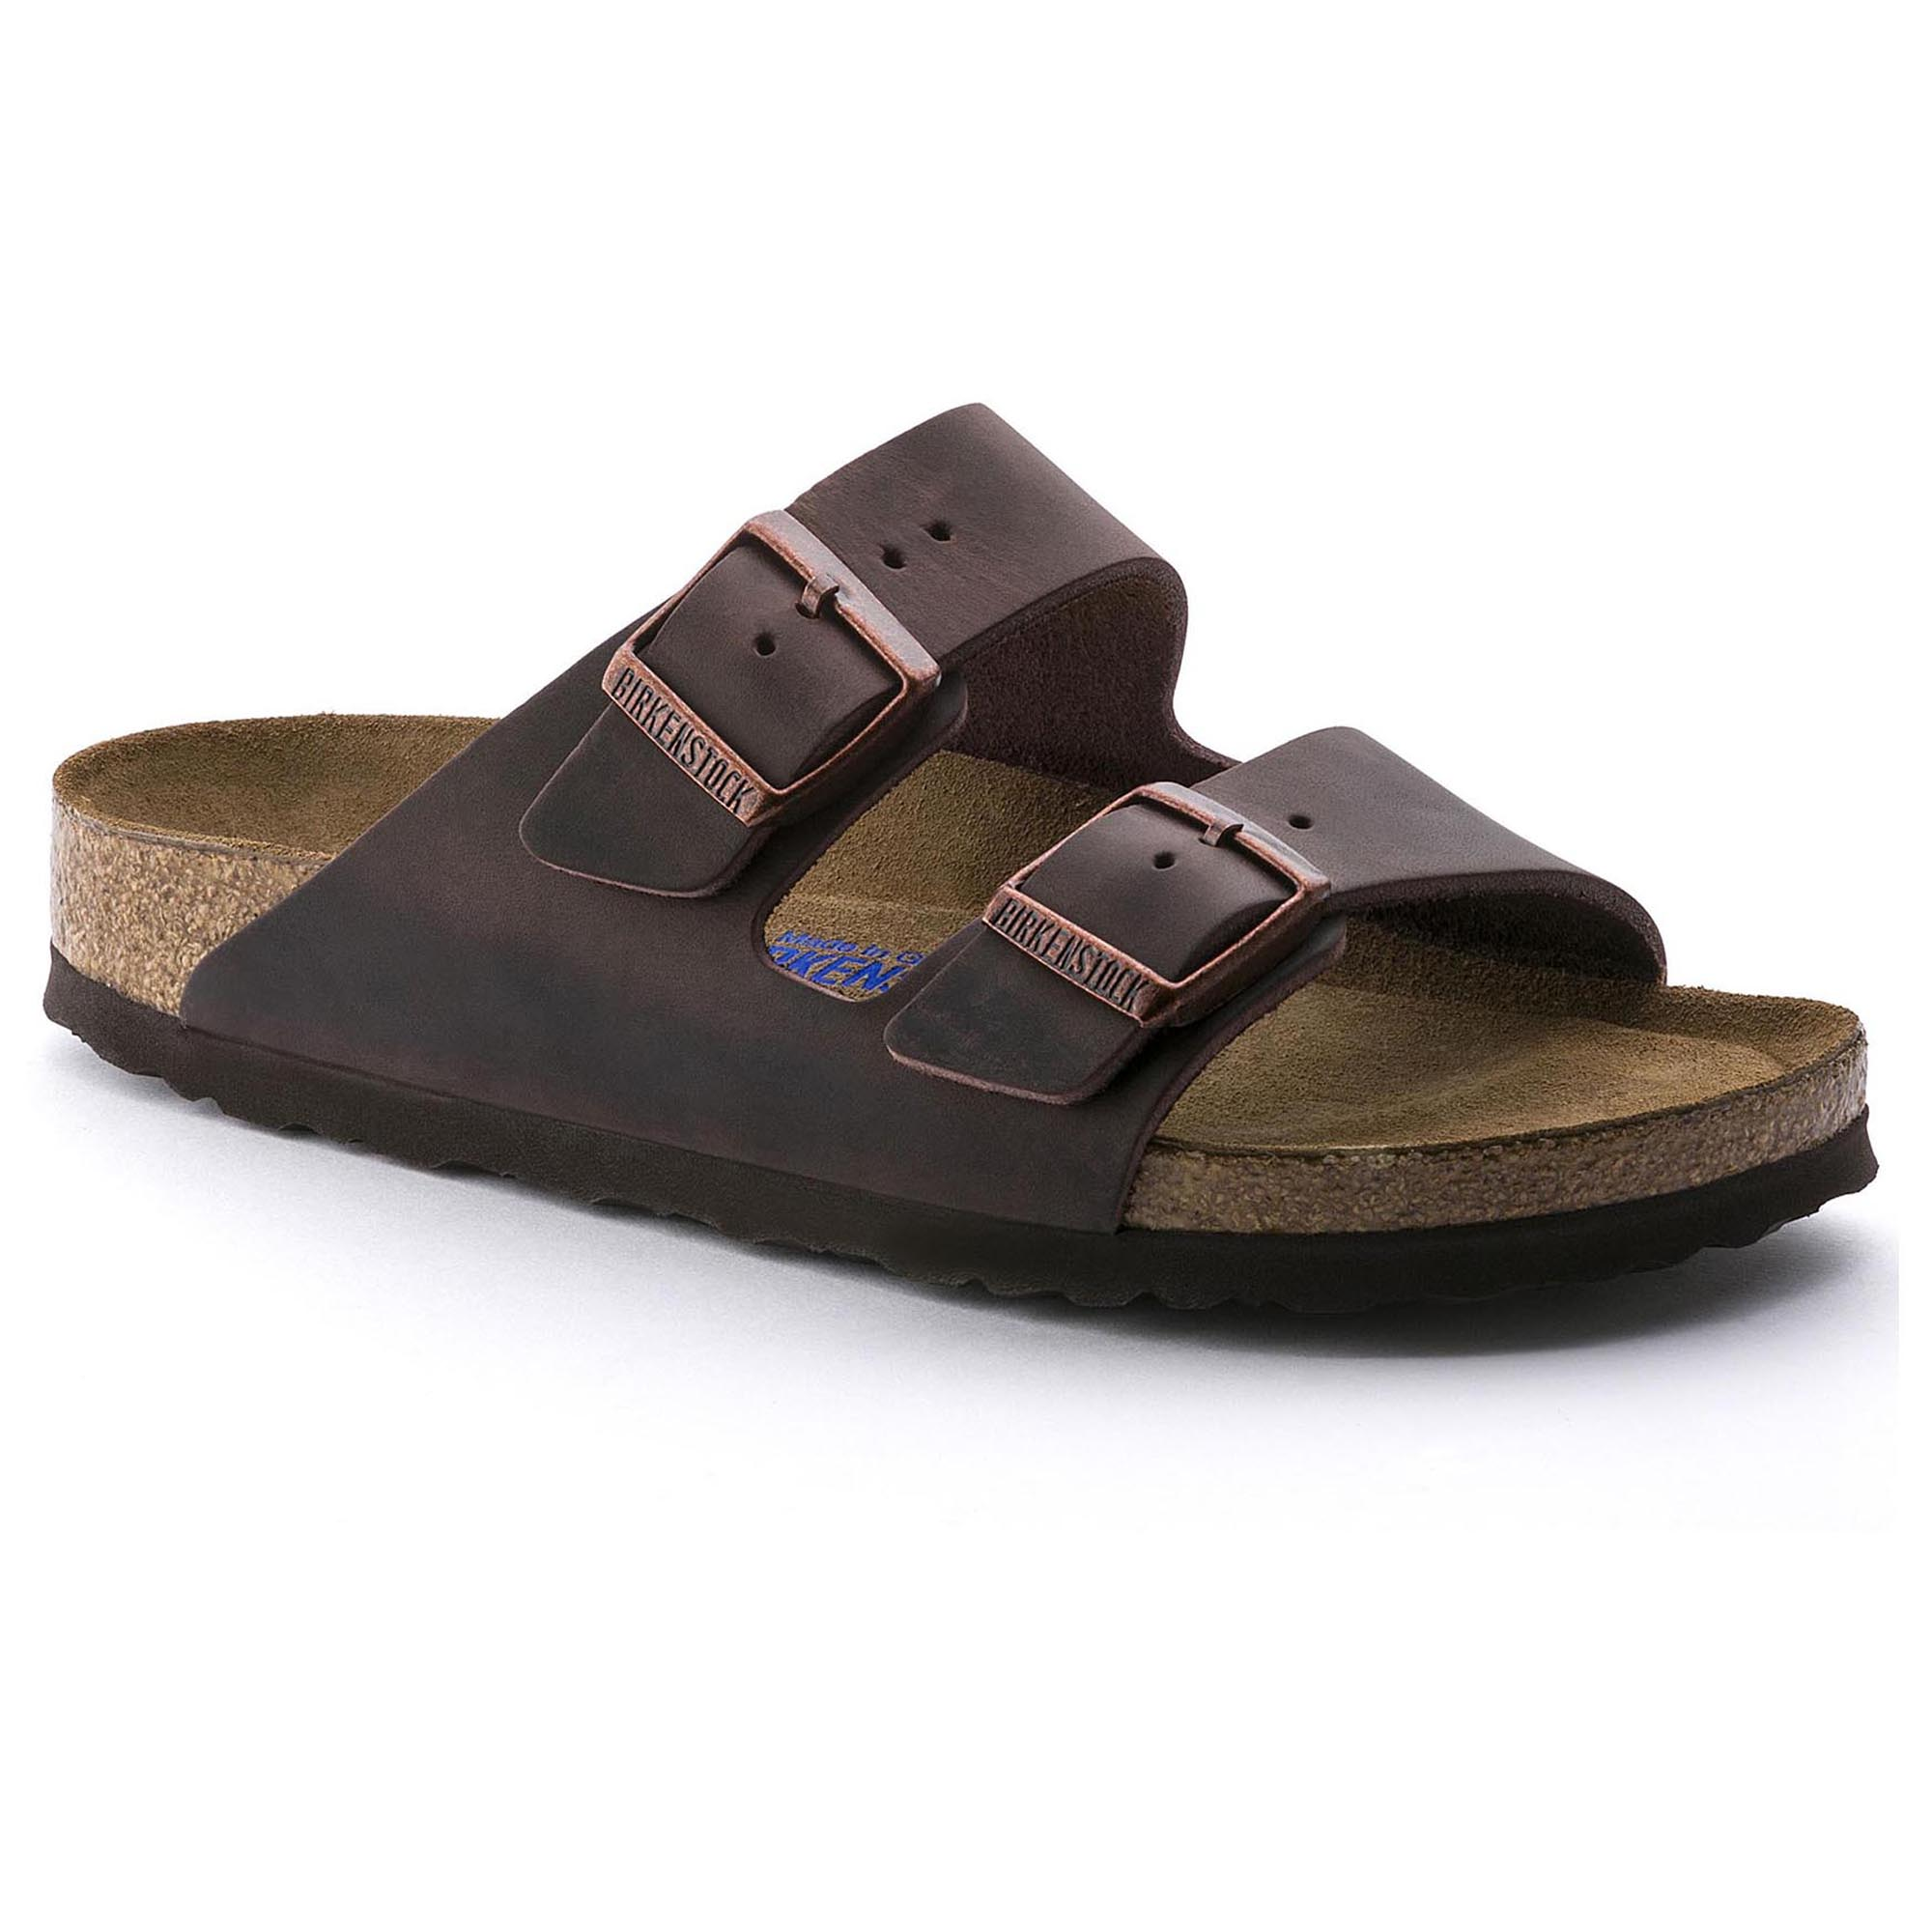 Birkenstock Men's Arizona Oiled Leather Casual Sandals Habana